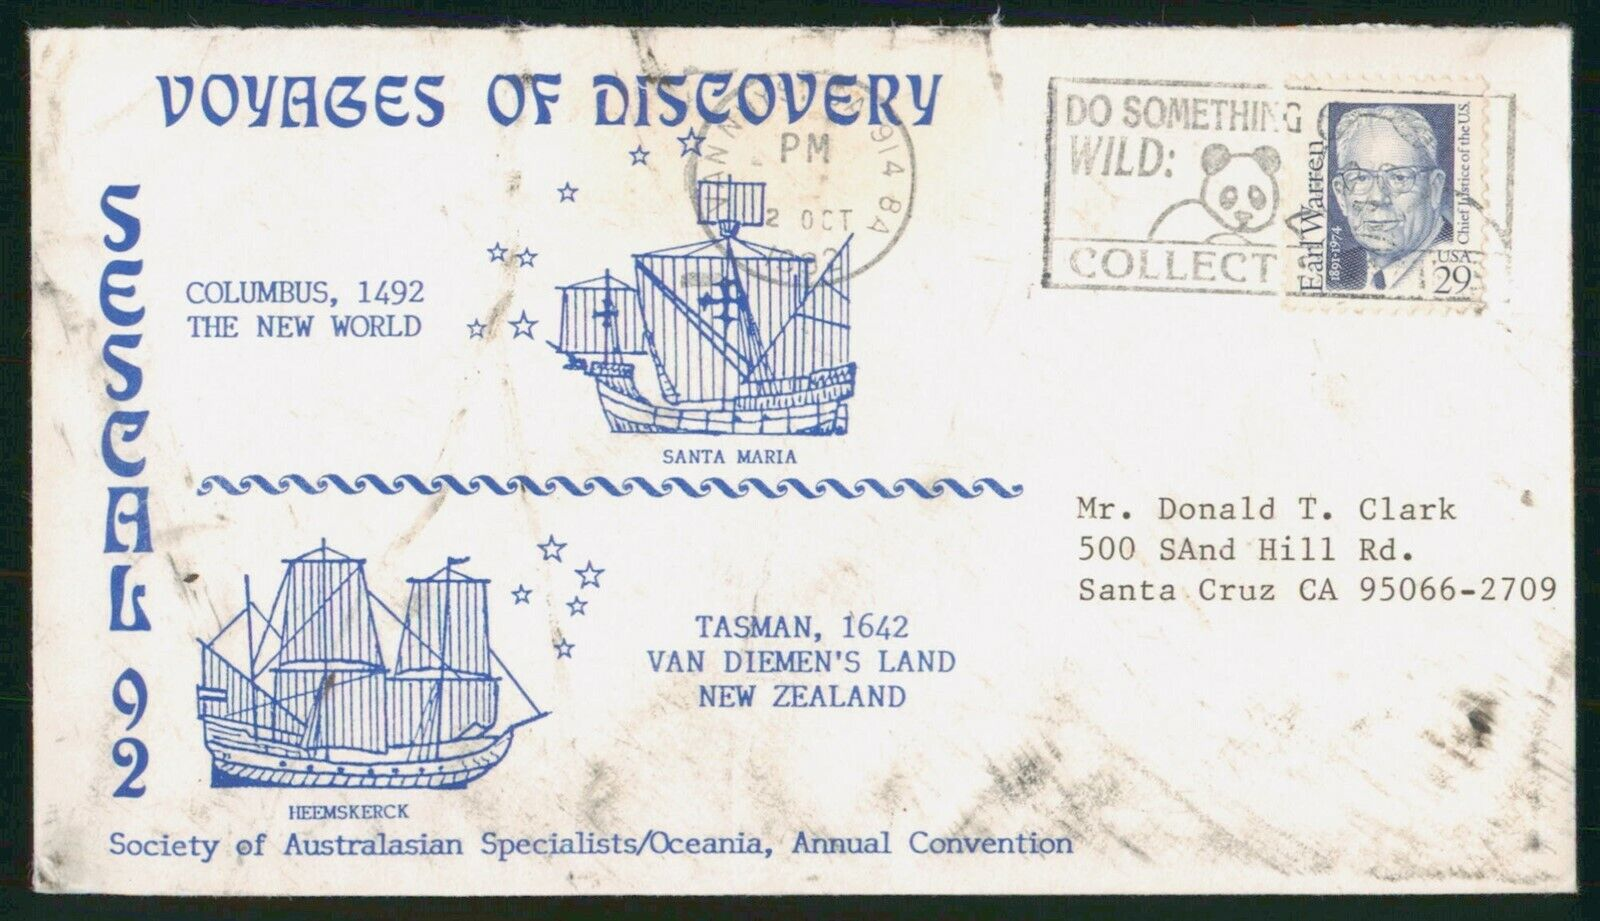 Mayfairstamps US Voyages Of Discovery Esecal Cover Wwp 57951 - $1.00